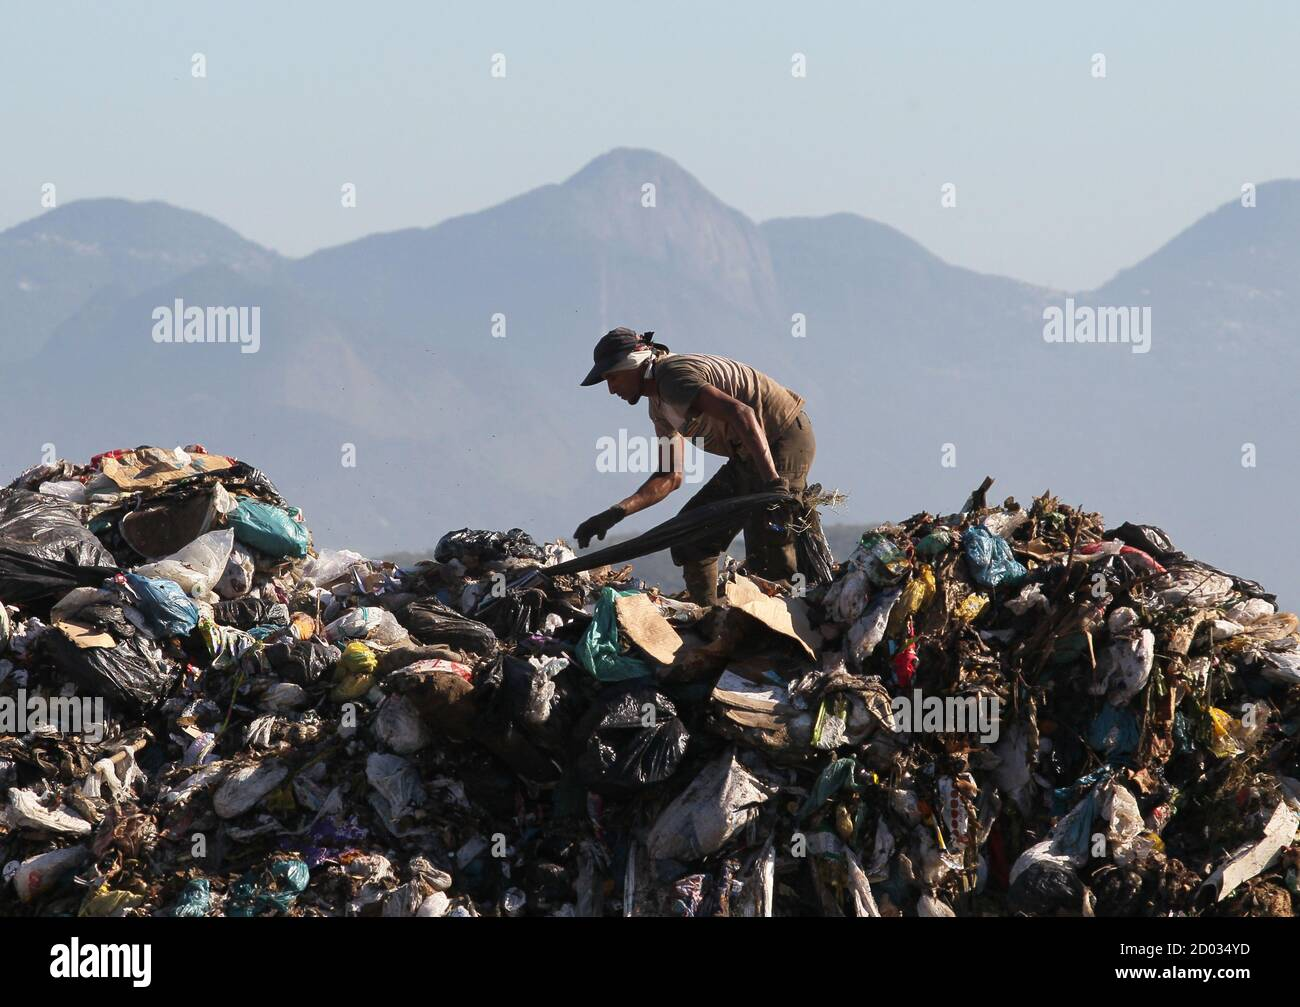 """A man collects recyclable materials from Jardim Gramacho landfill, where the documentary """"Lixo Extraordinario"""" (Waste Land) was filmed, in Rio de Janeiro January 28, 2011. Waste Land follows artist Vik Muniz on a journey from his home in Brooklyn to his native Brazil, where he met a band of garbage pickers in the world's largest garbage dump, Jardim Gramacho. Waste Land has been nominated for an Oscar in the category of Best Documentary. REUTERS/Sergio Moraes (BRAZIL - Tags: ENVIRONMENT SOCIETY) Stock Photo"""